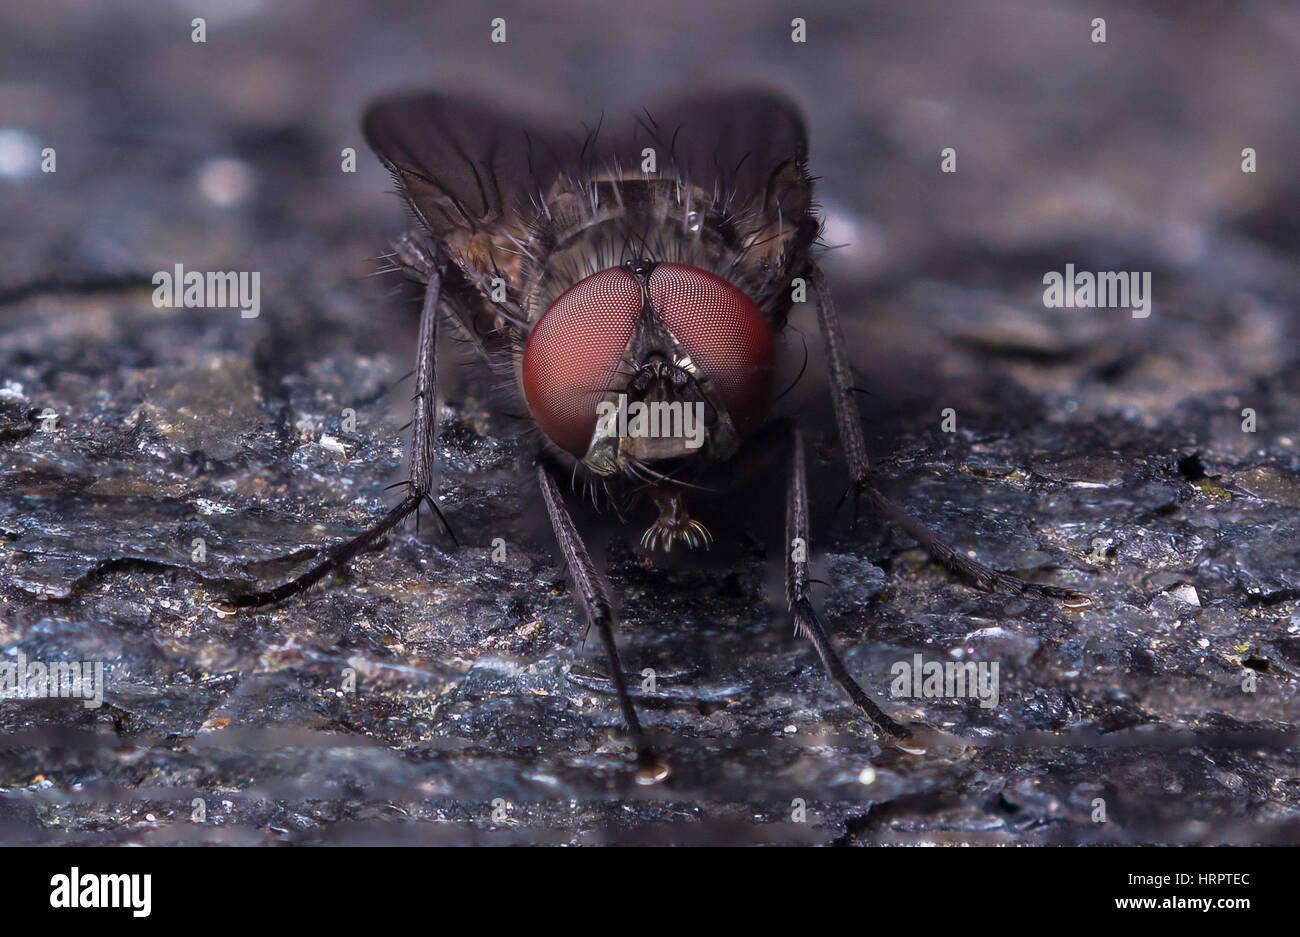 Close up anterior view of a fly. Extreme detailed photograph of the compound eyes. - Stock Image